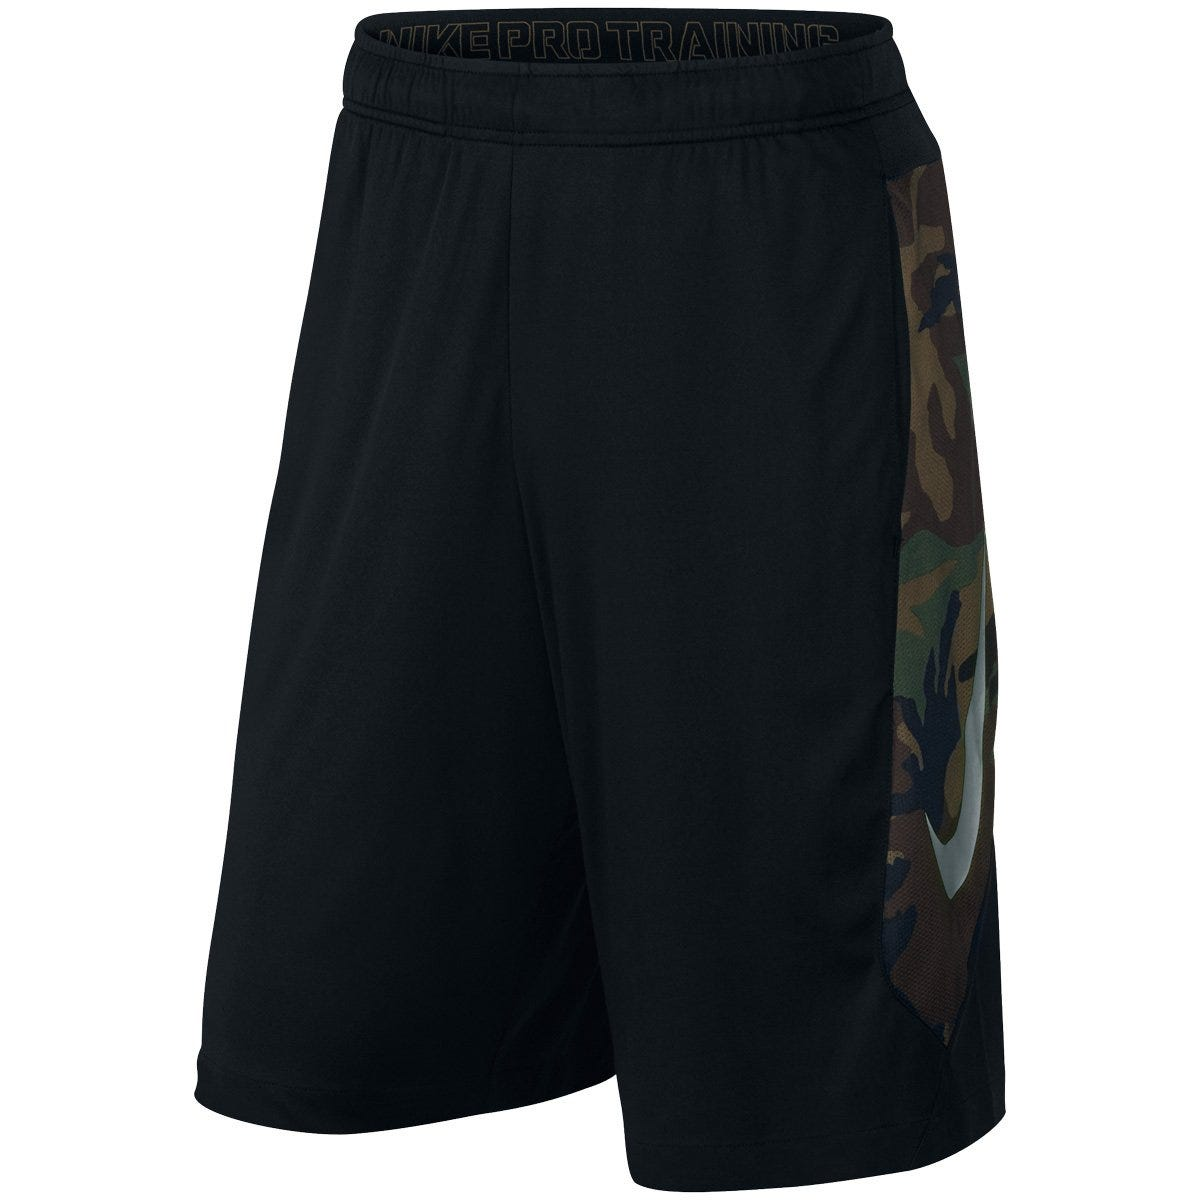 Baseball Hyperspeed Knit Camo Sr. Training Shorts by Nike; Mens Small